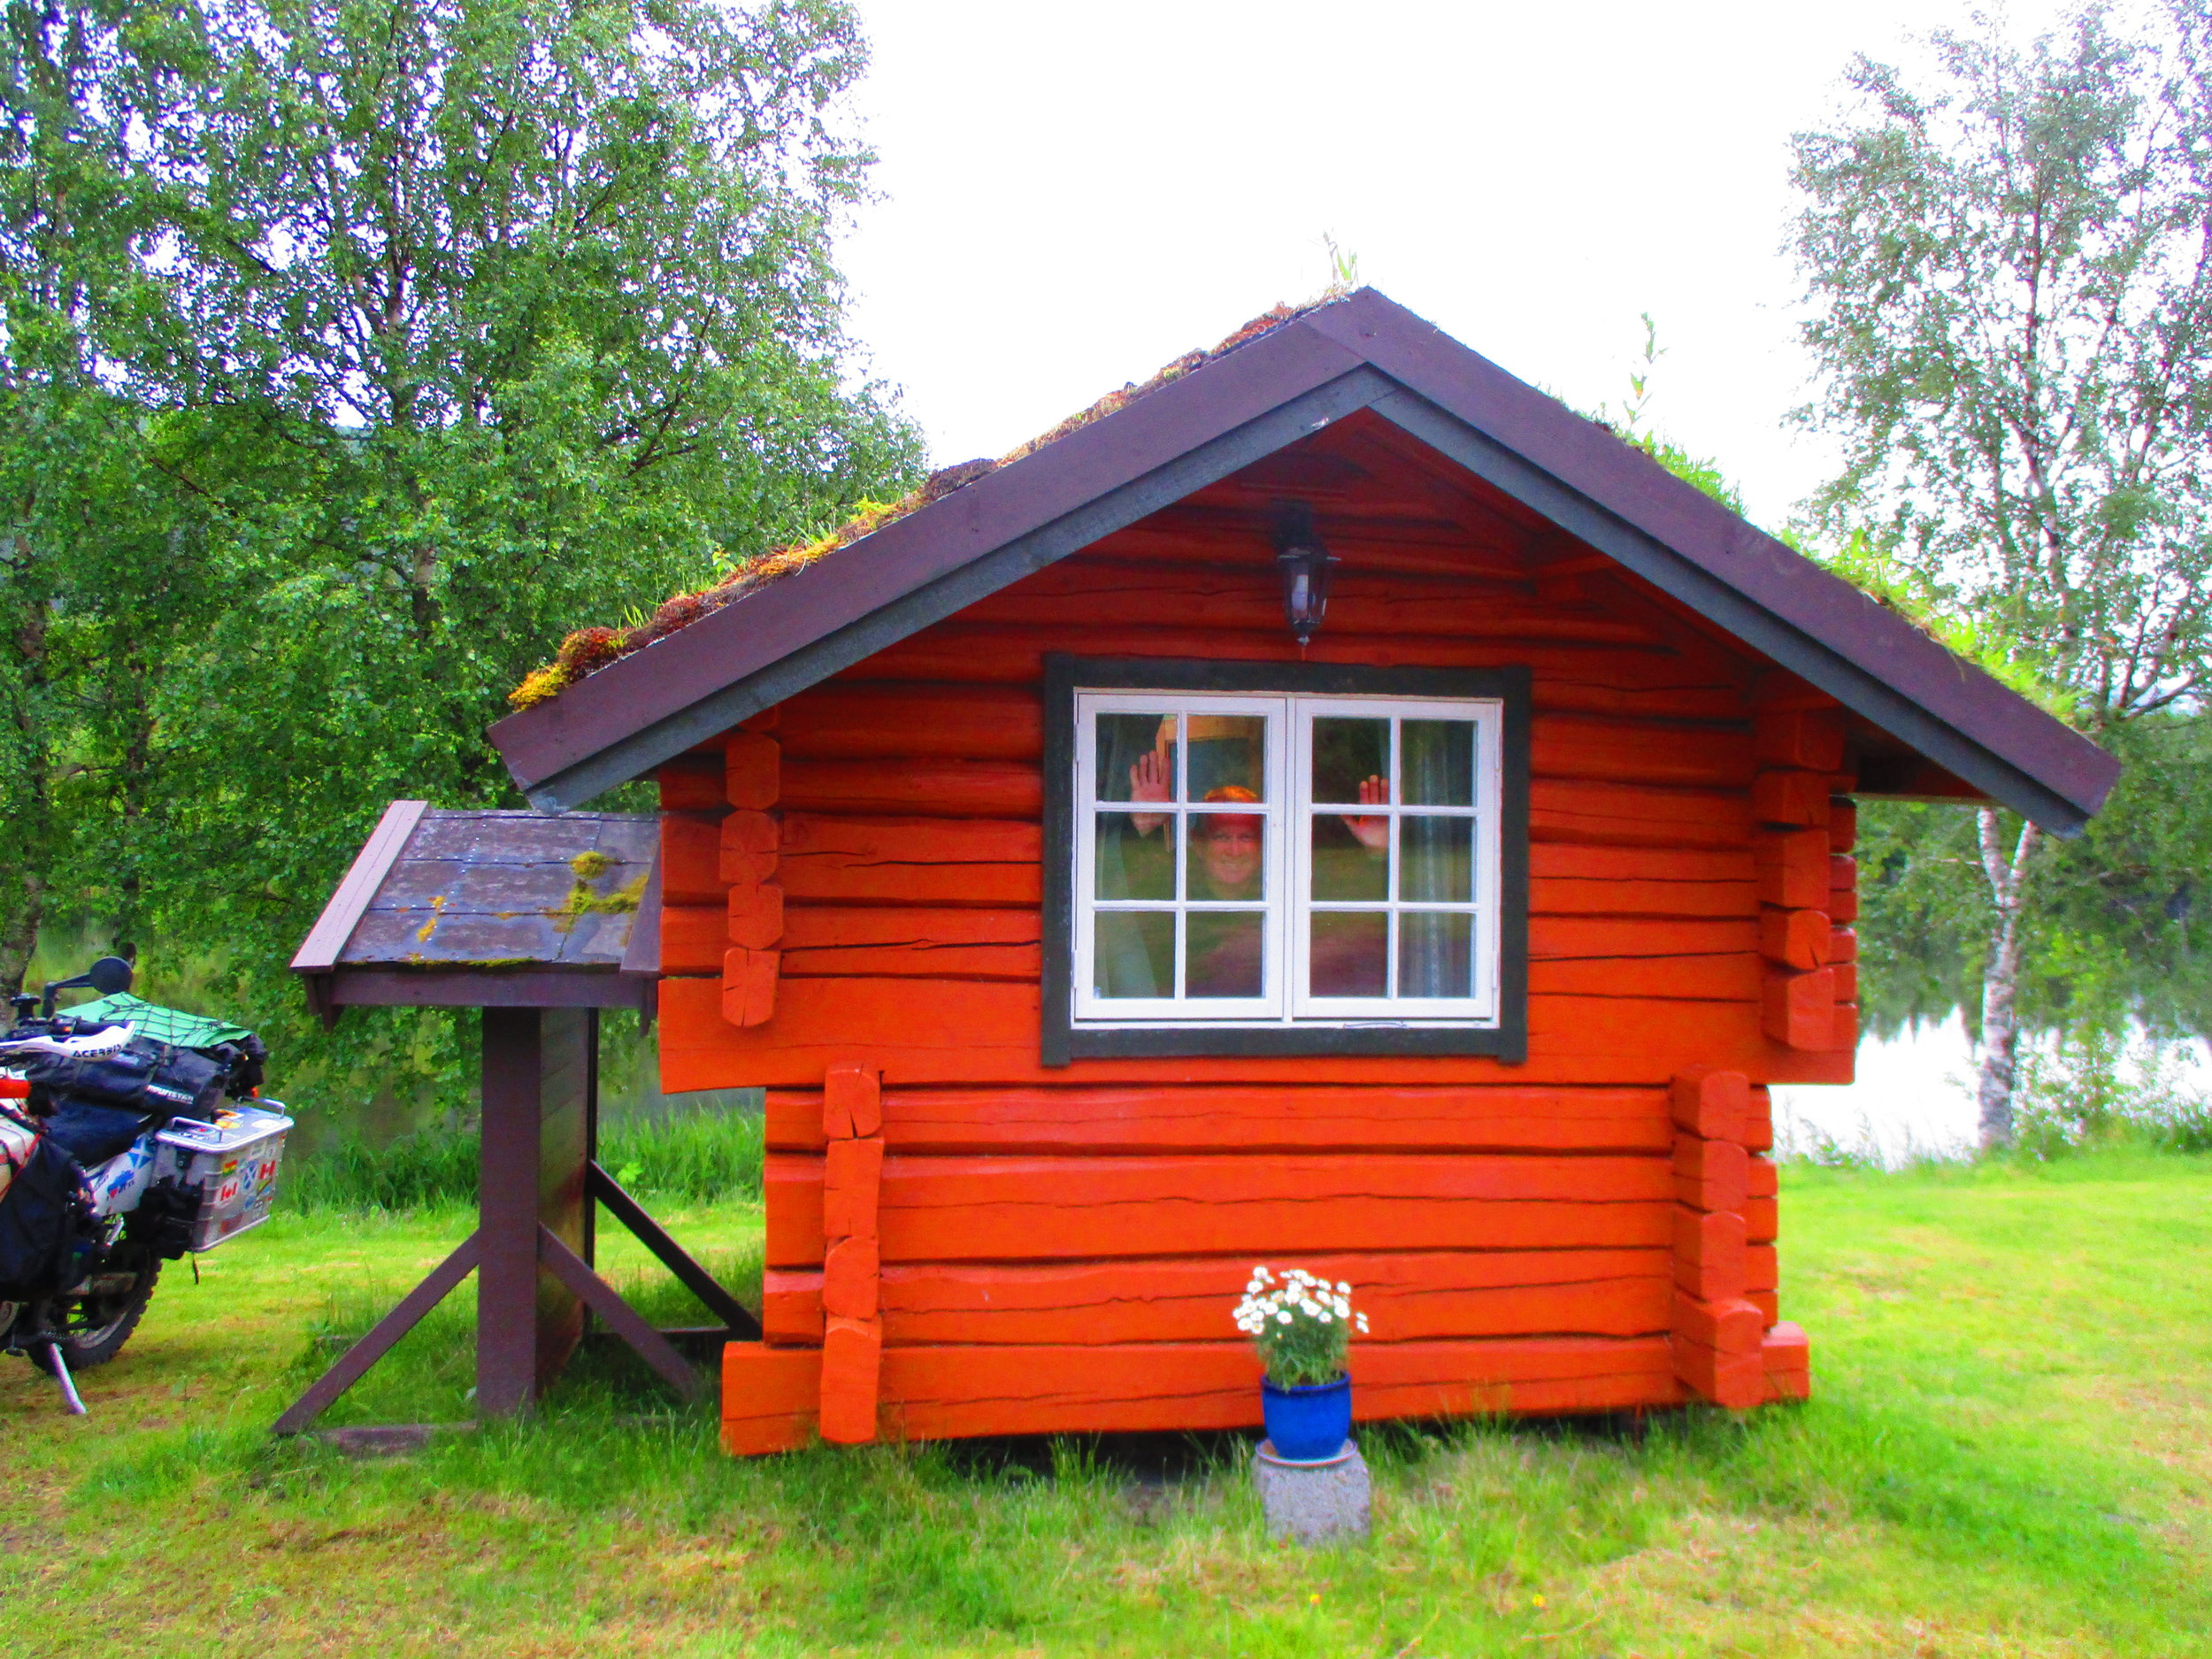 The smallest cabin in the world - probably.